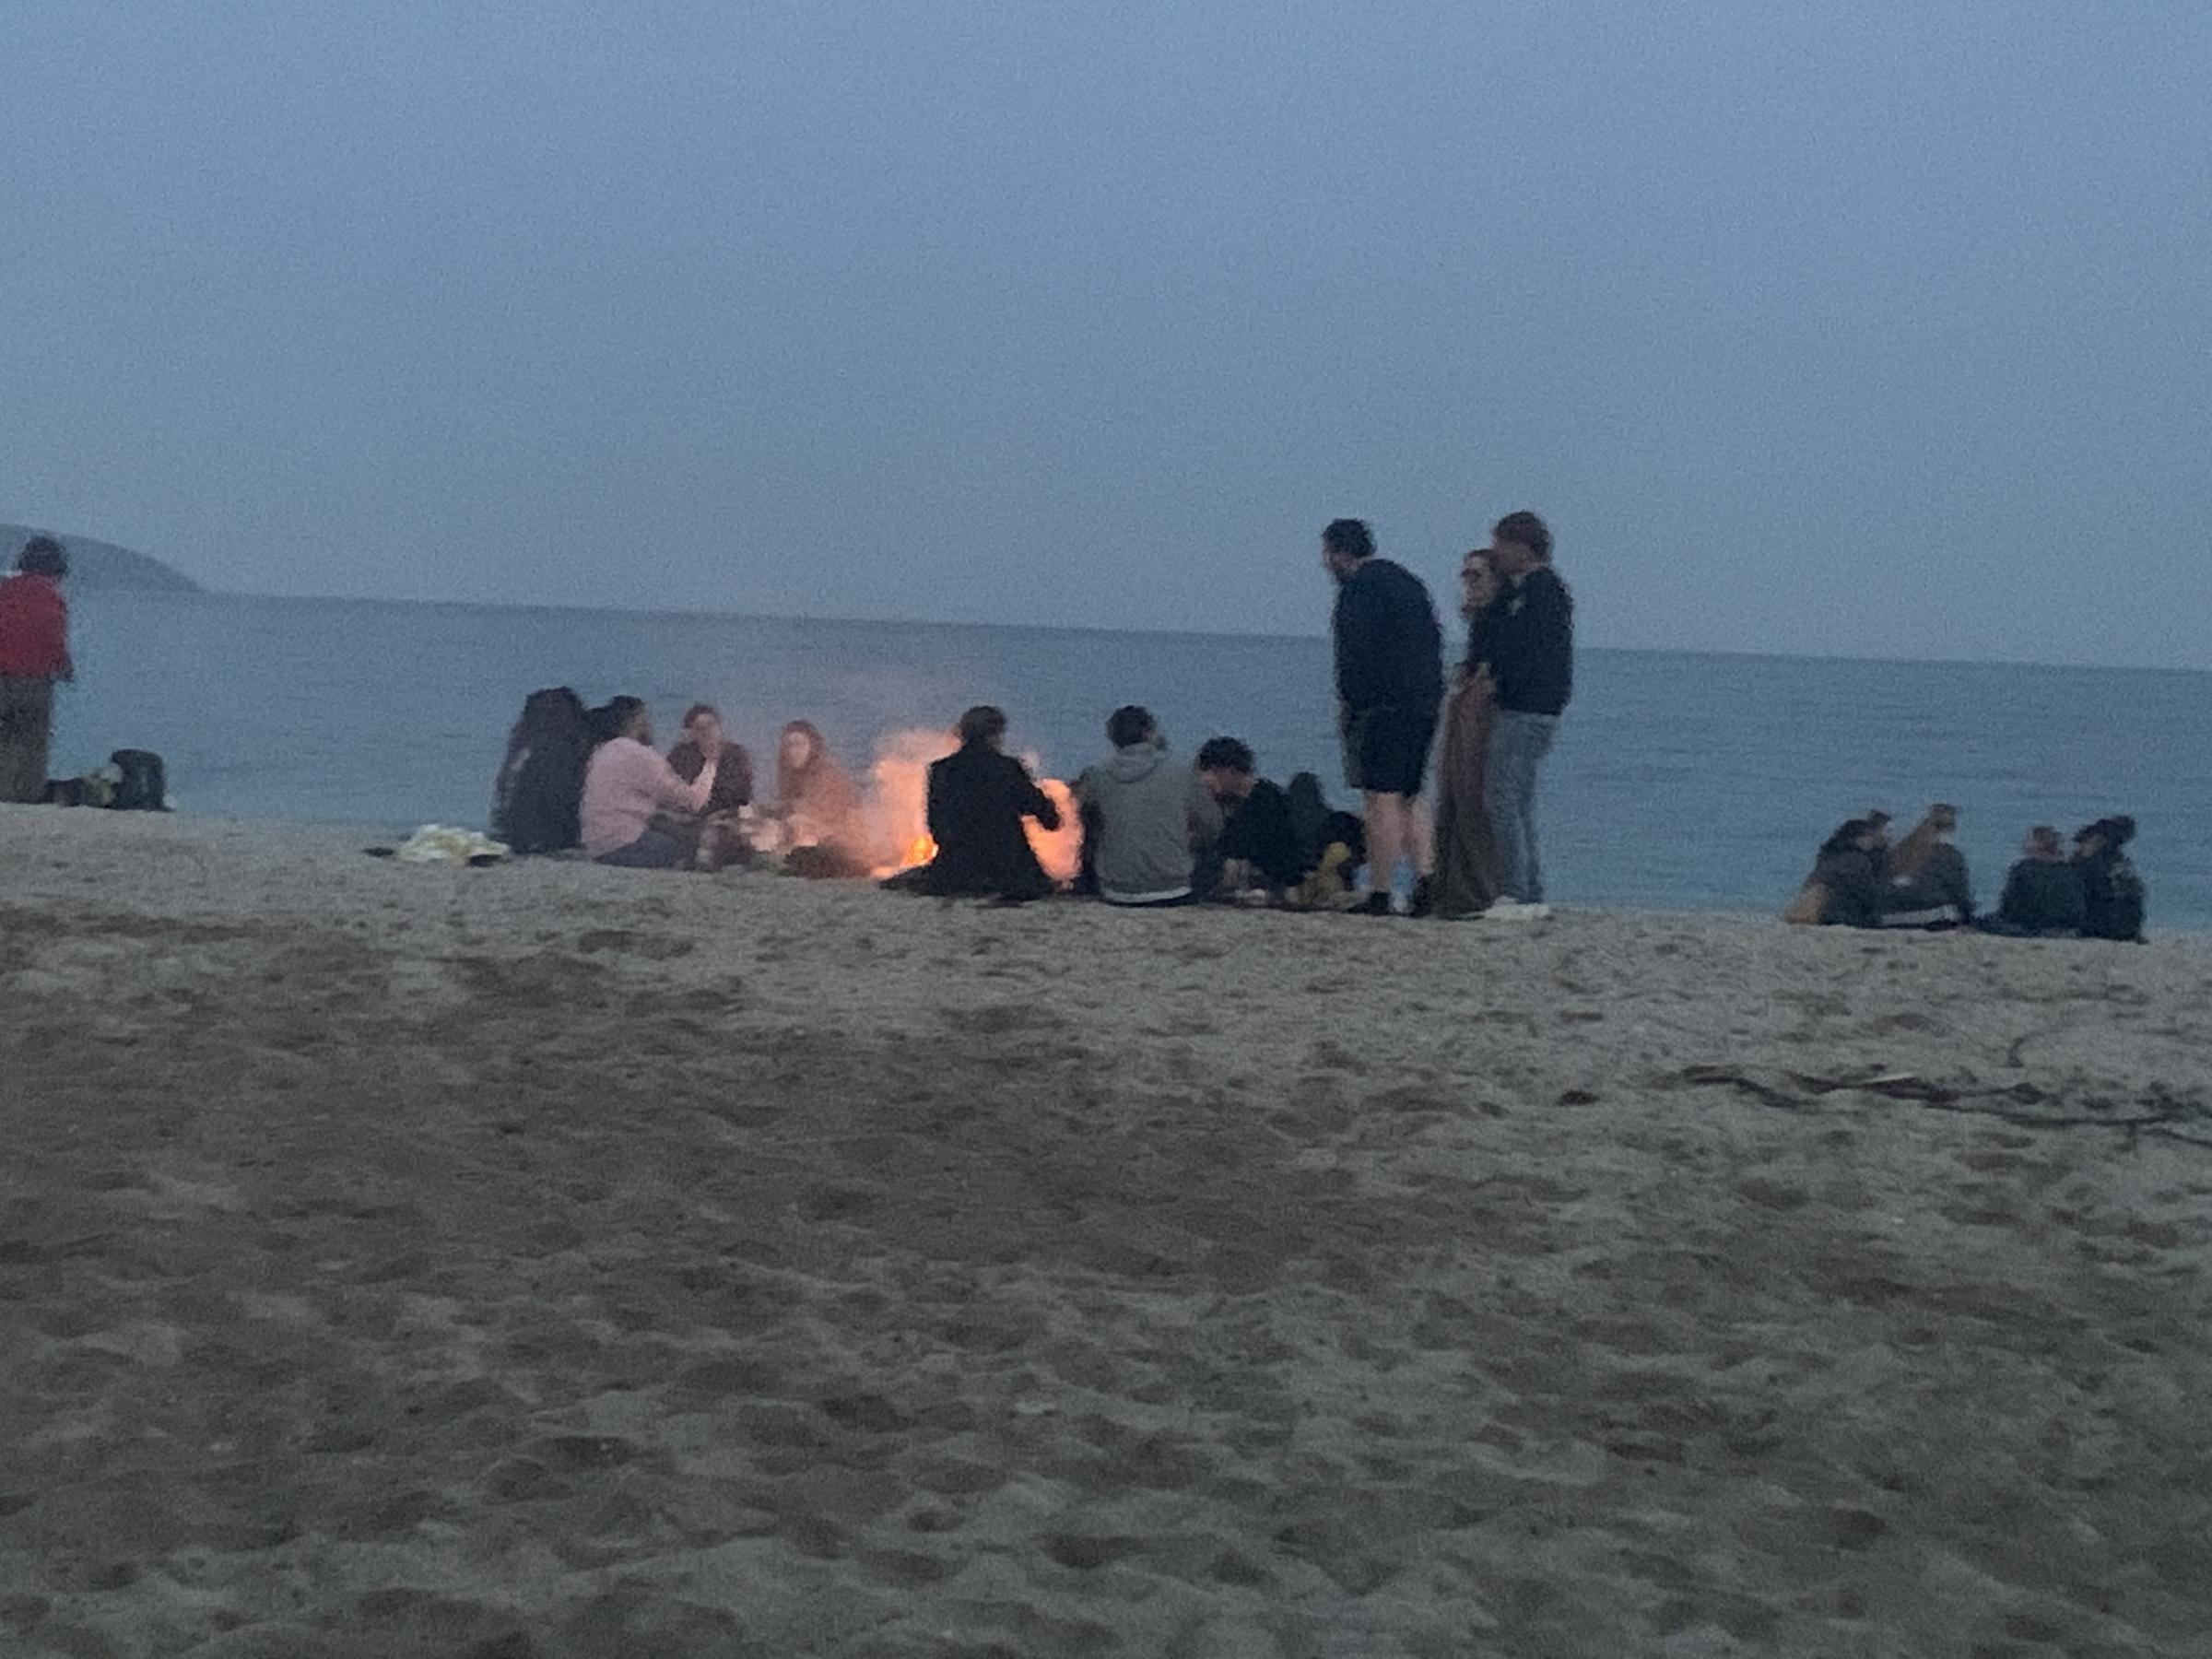 People lighting fires on the beach on Sunday